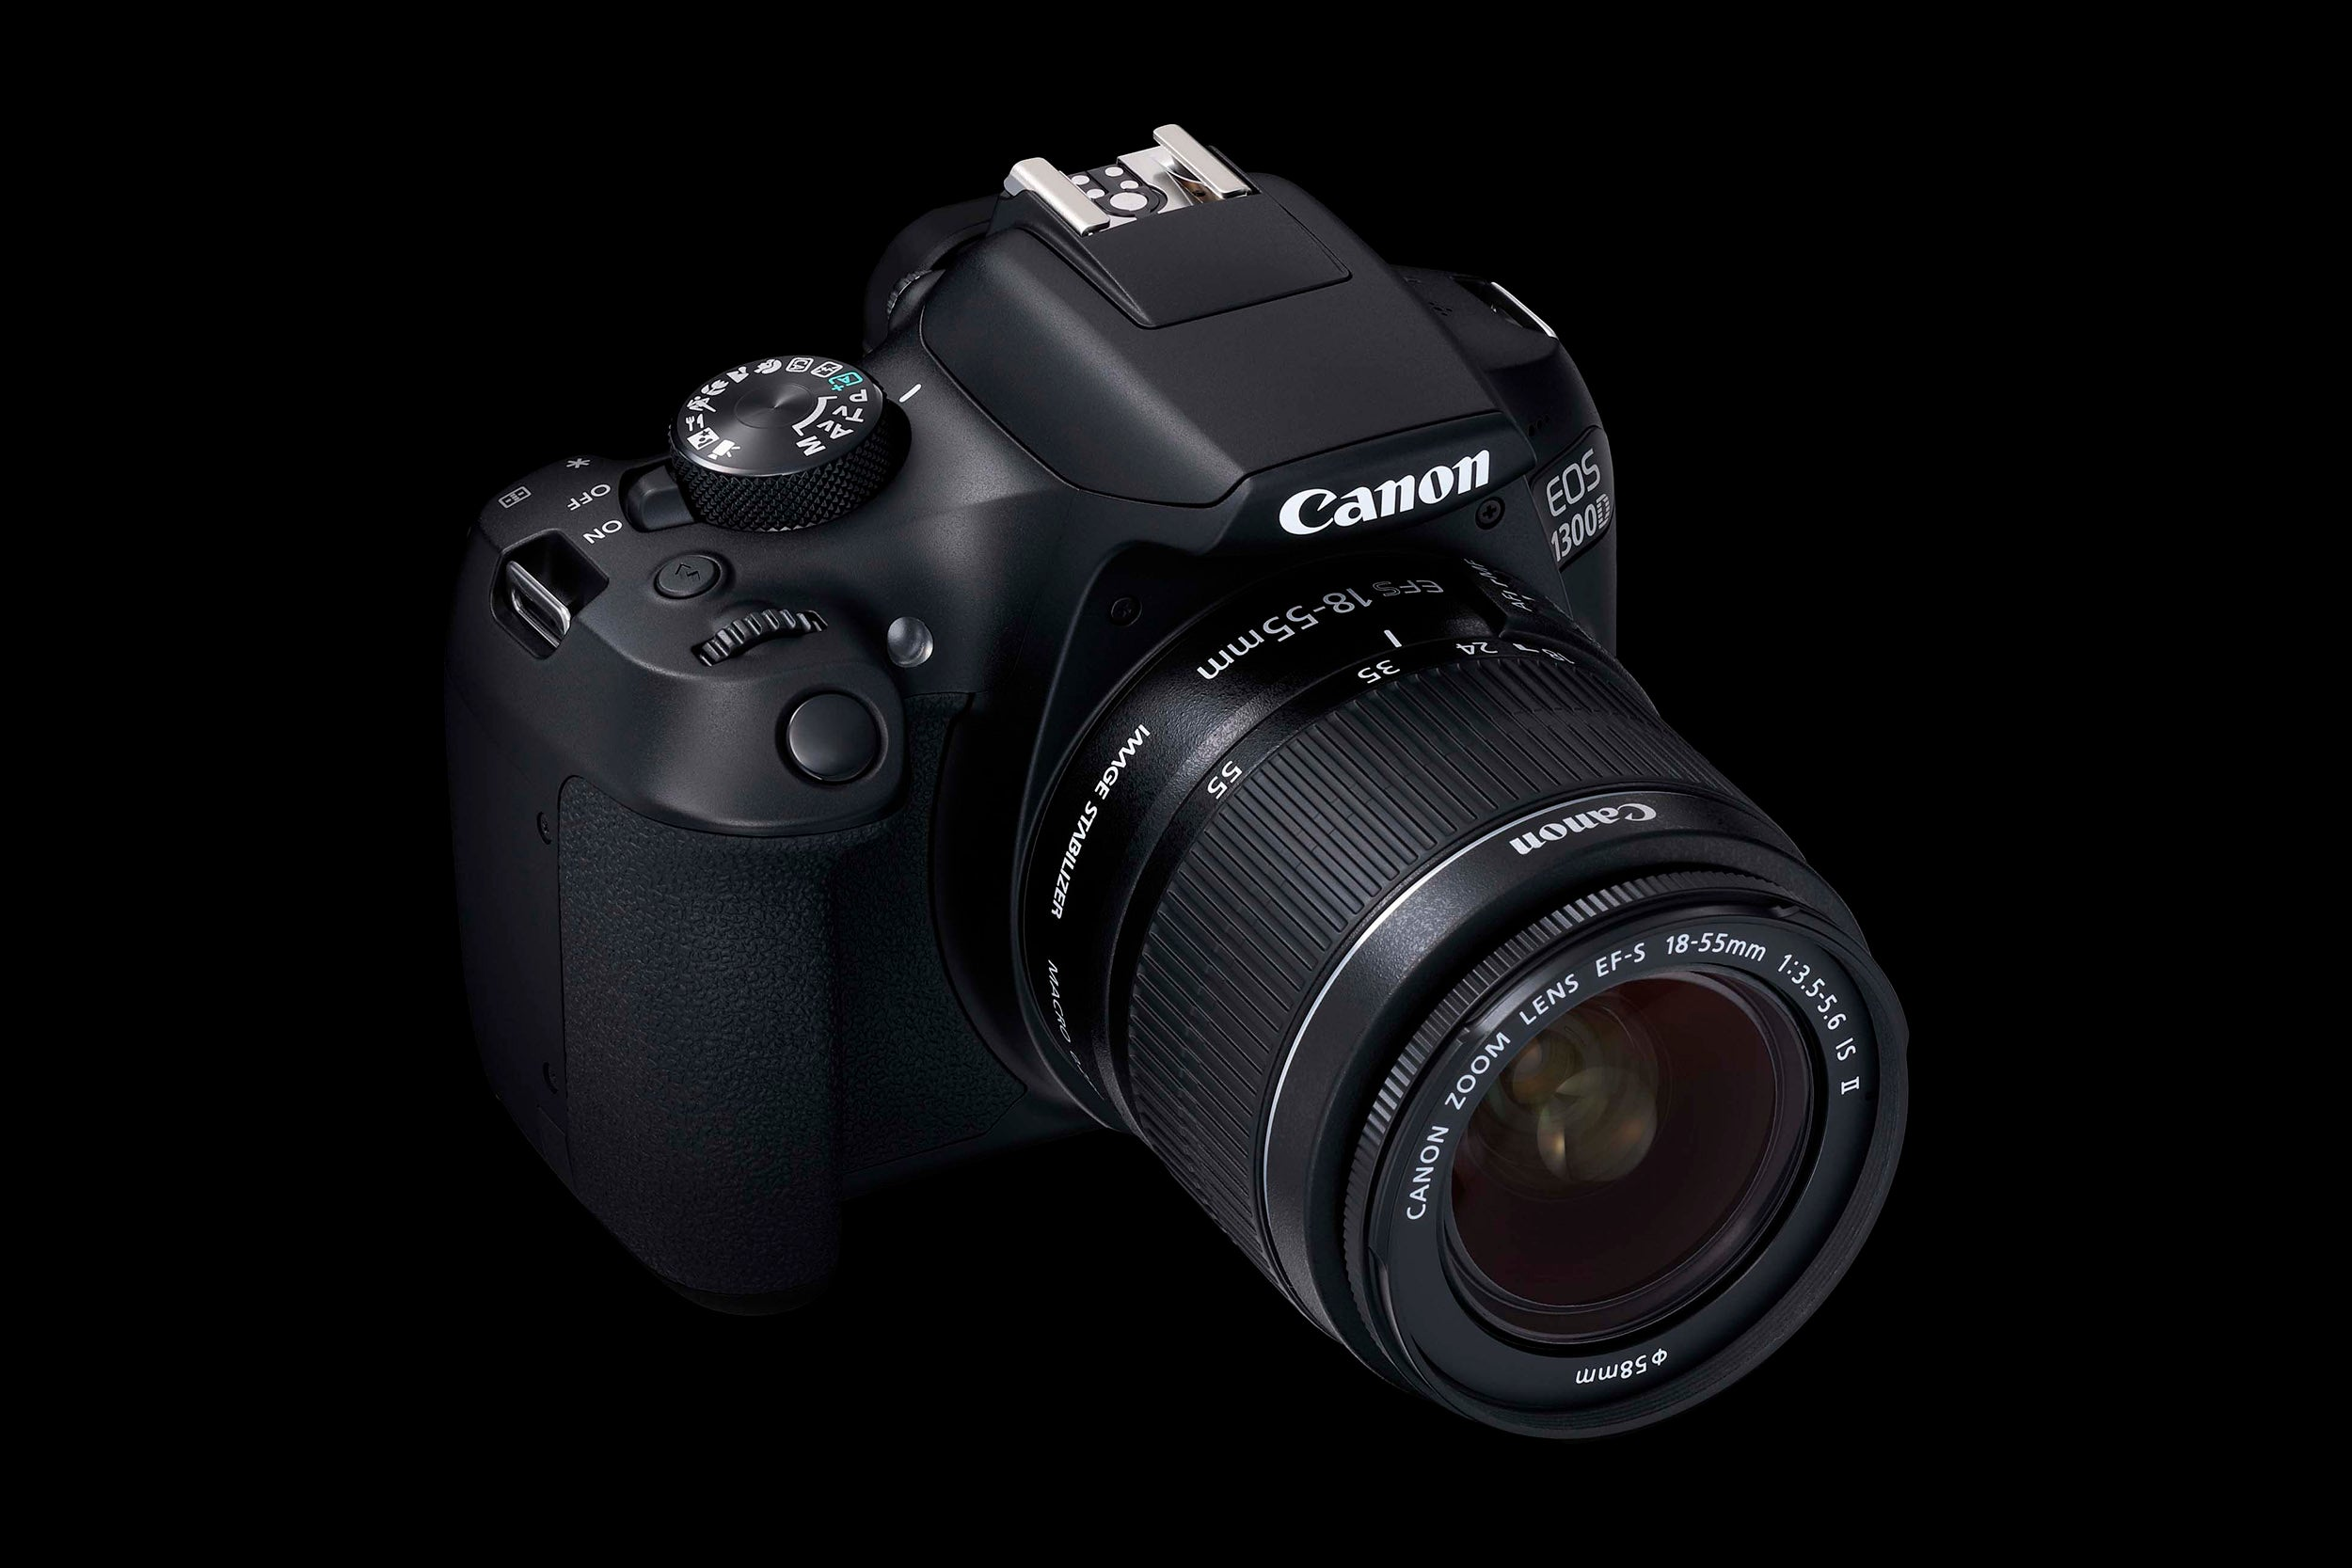 canon eos 1300d key features what digital camera. Black Bedroom Furniture Sets. Home Design Ideas